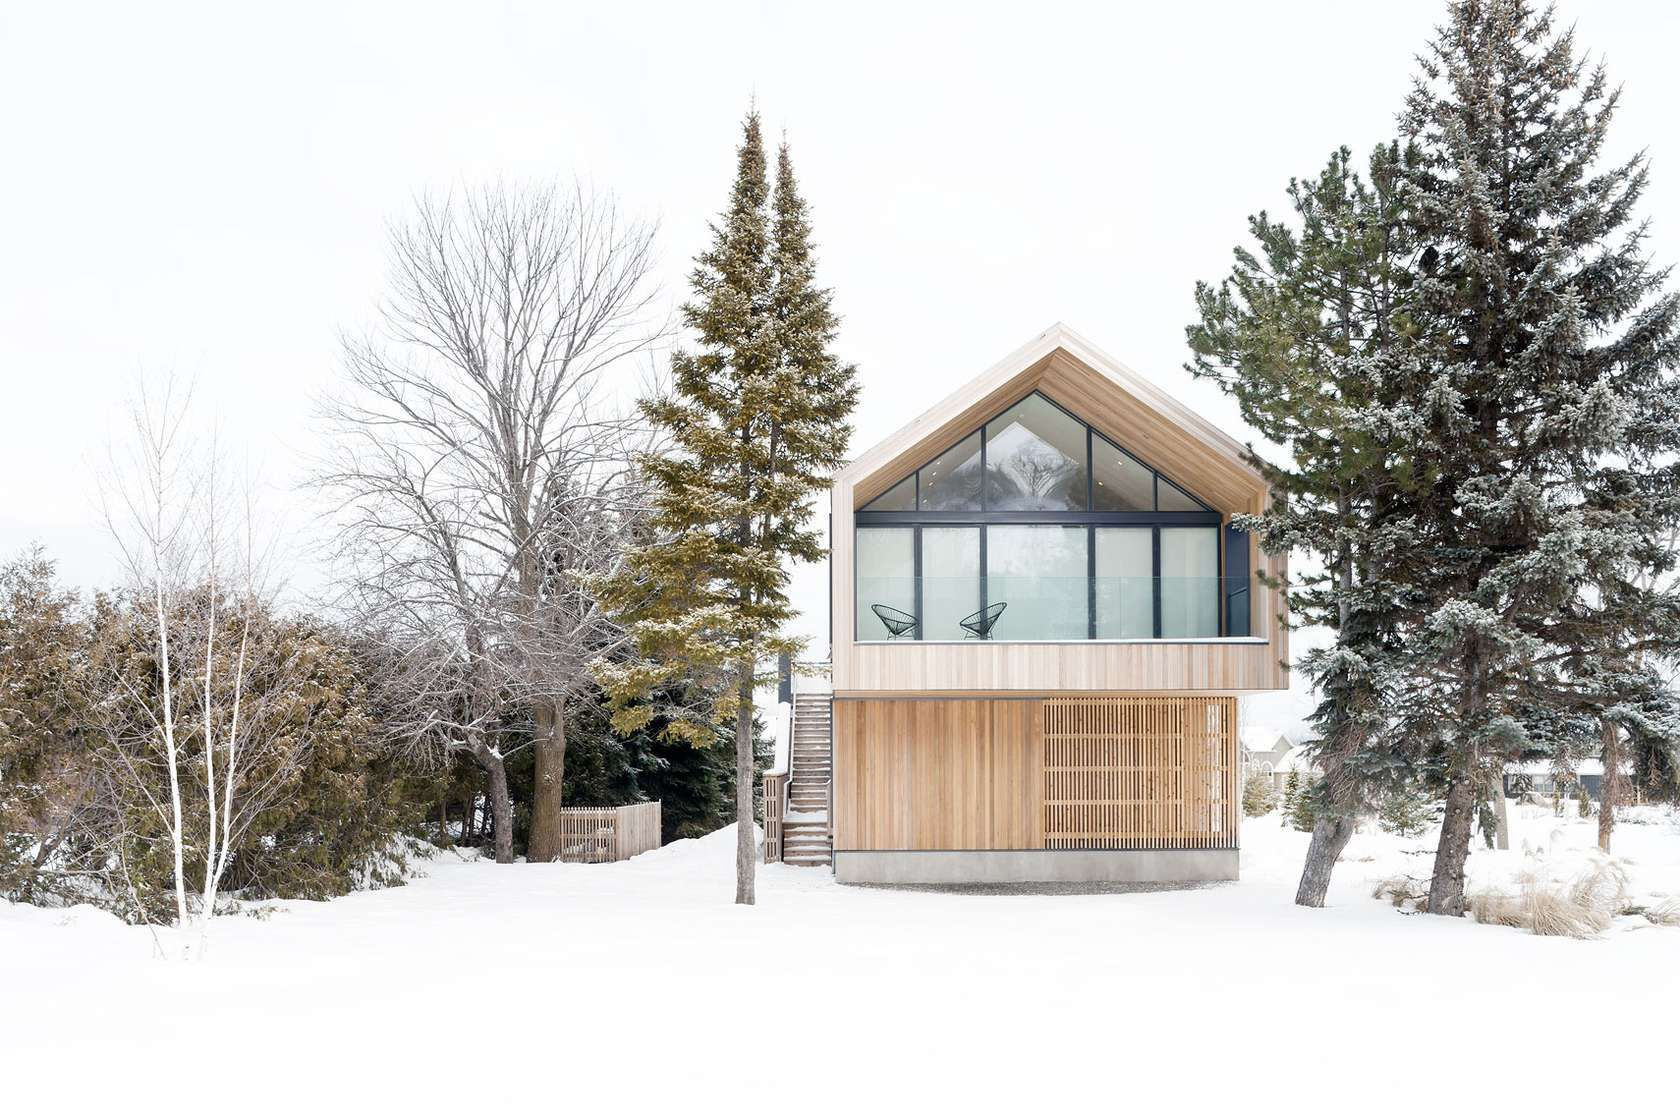 A country home in a community of modest chalets situated between a promontory of the Niagara Escarpment and Georgian Bay ...